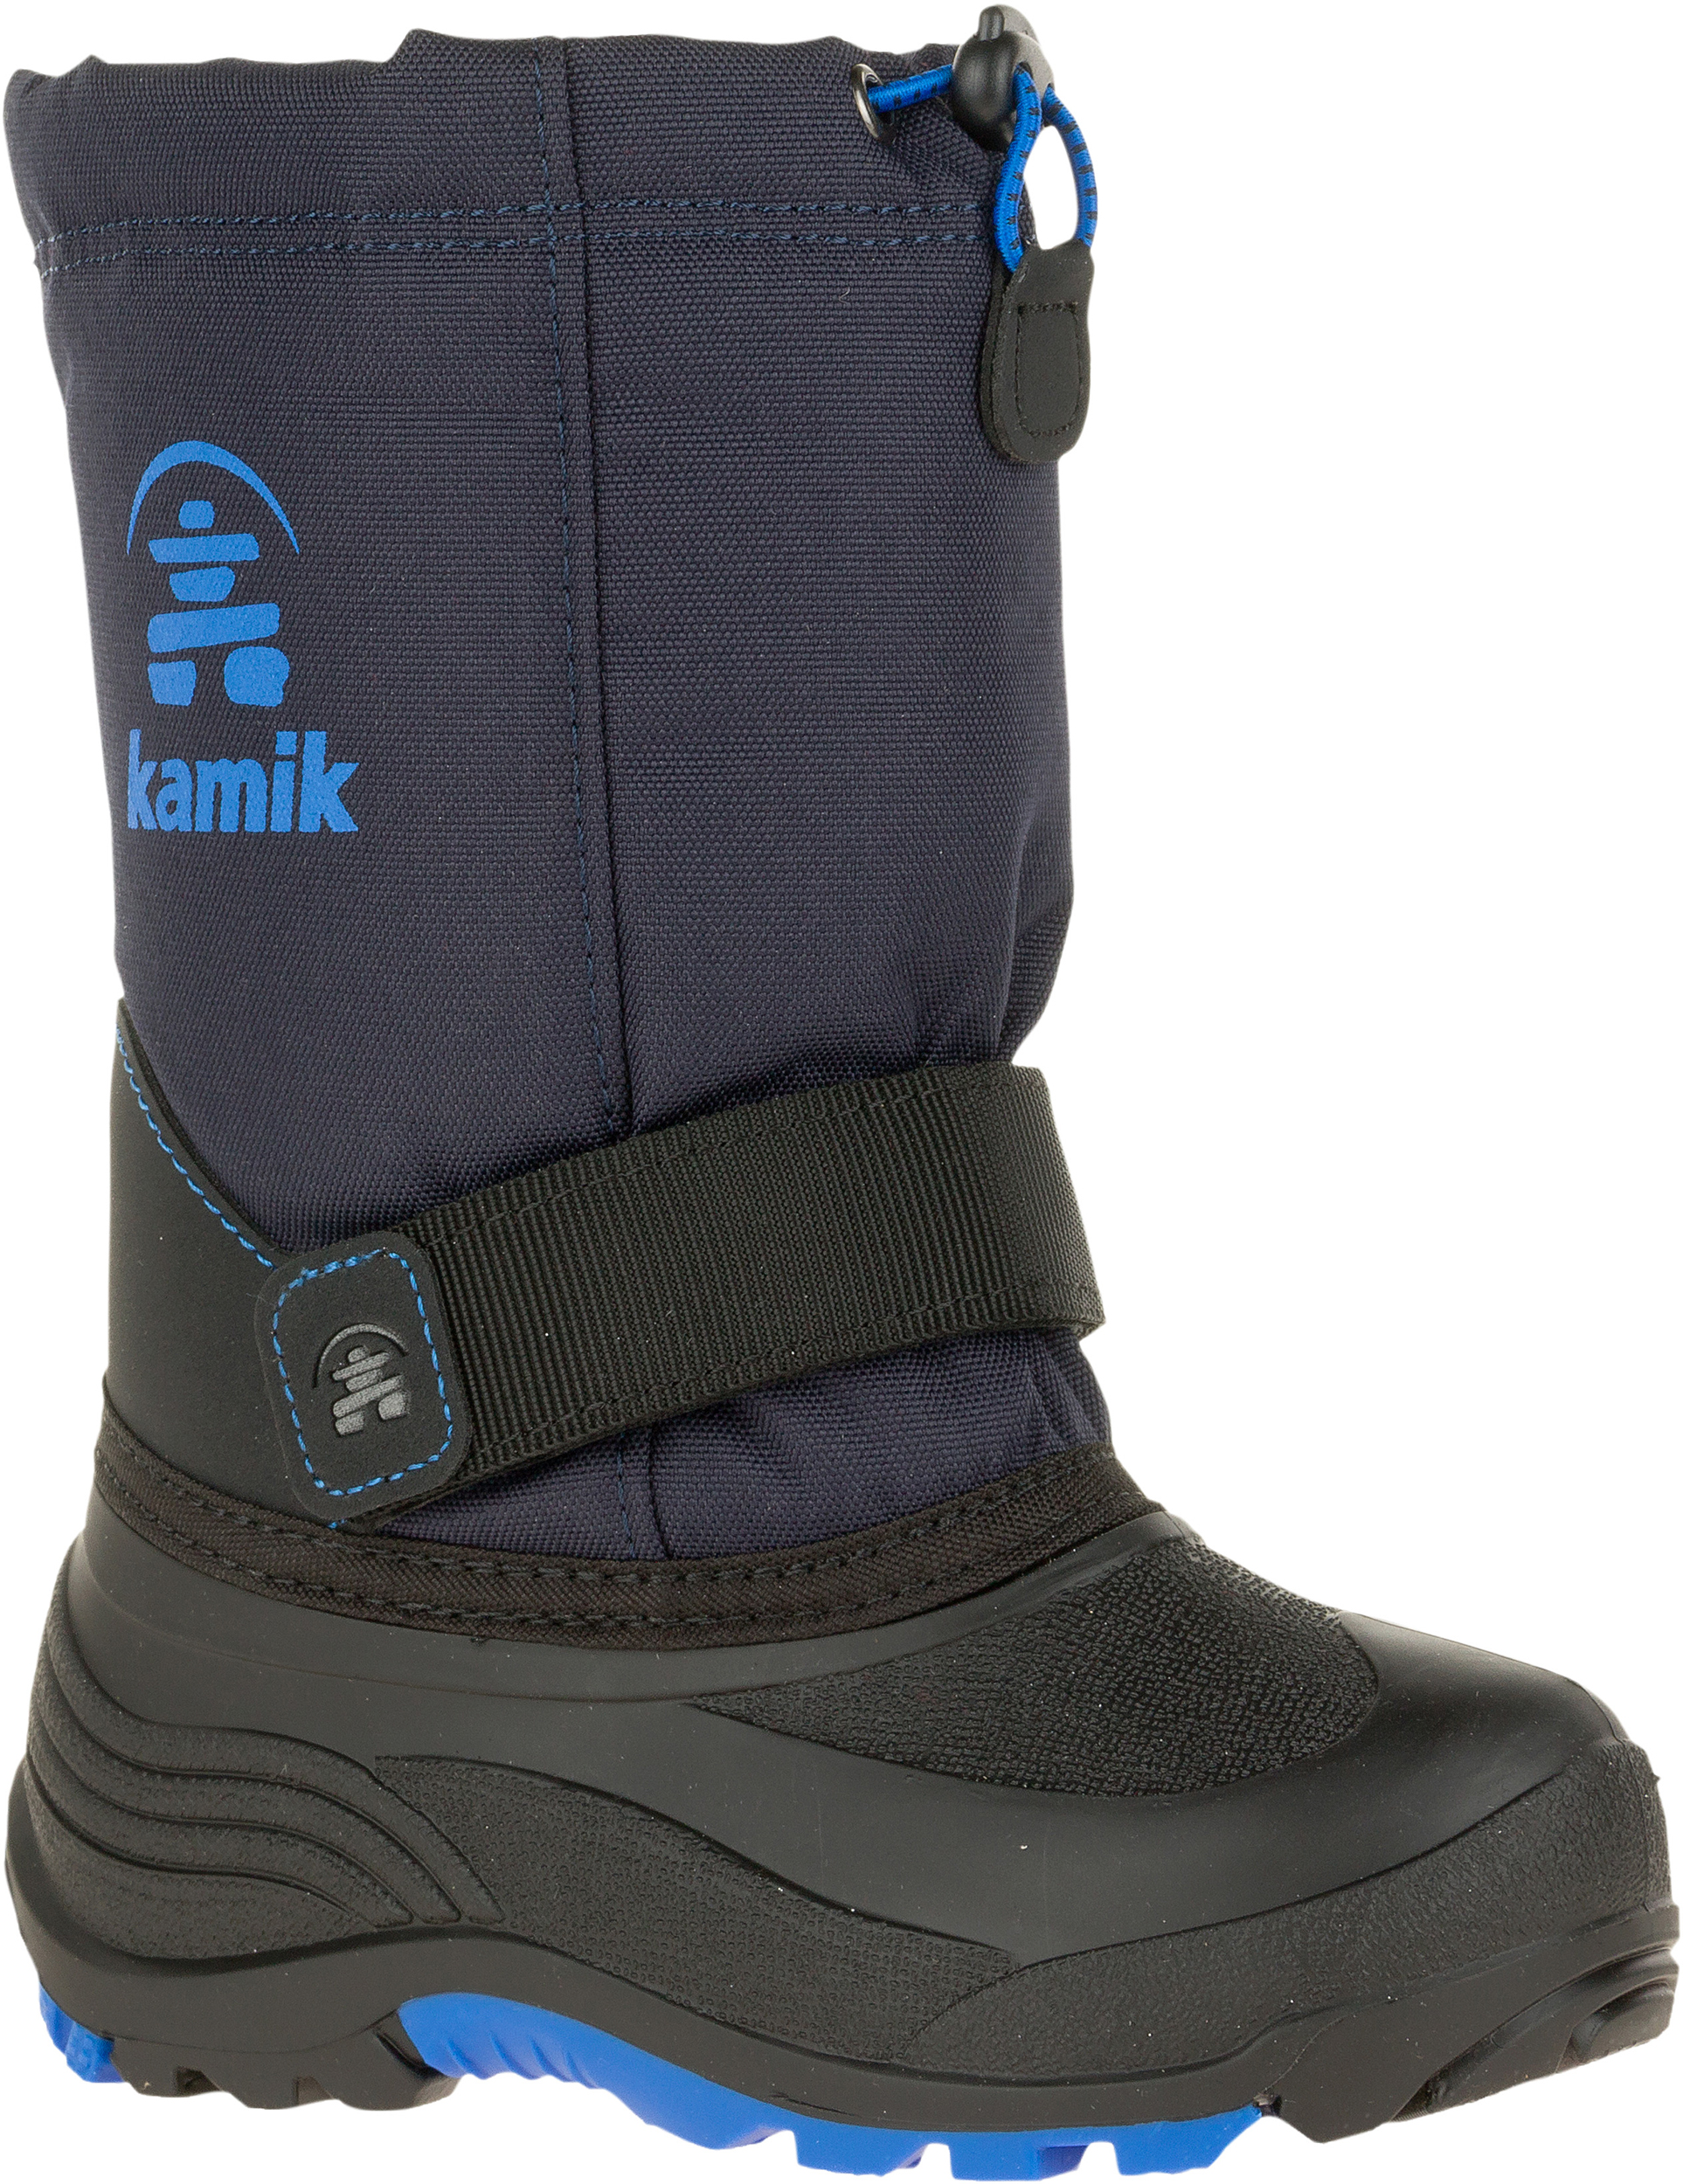 59a114b52df24 Kamik Rocket Boots - Children to Youths